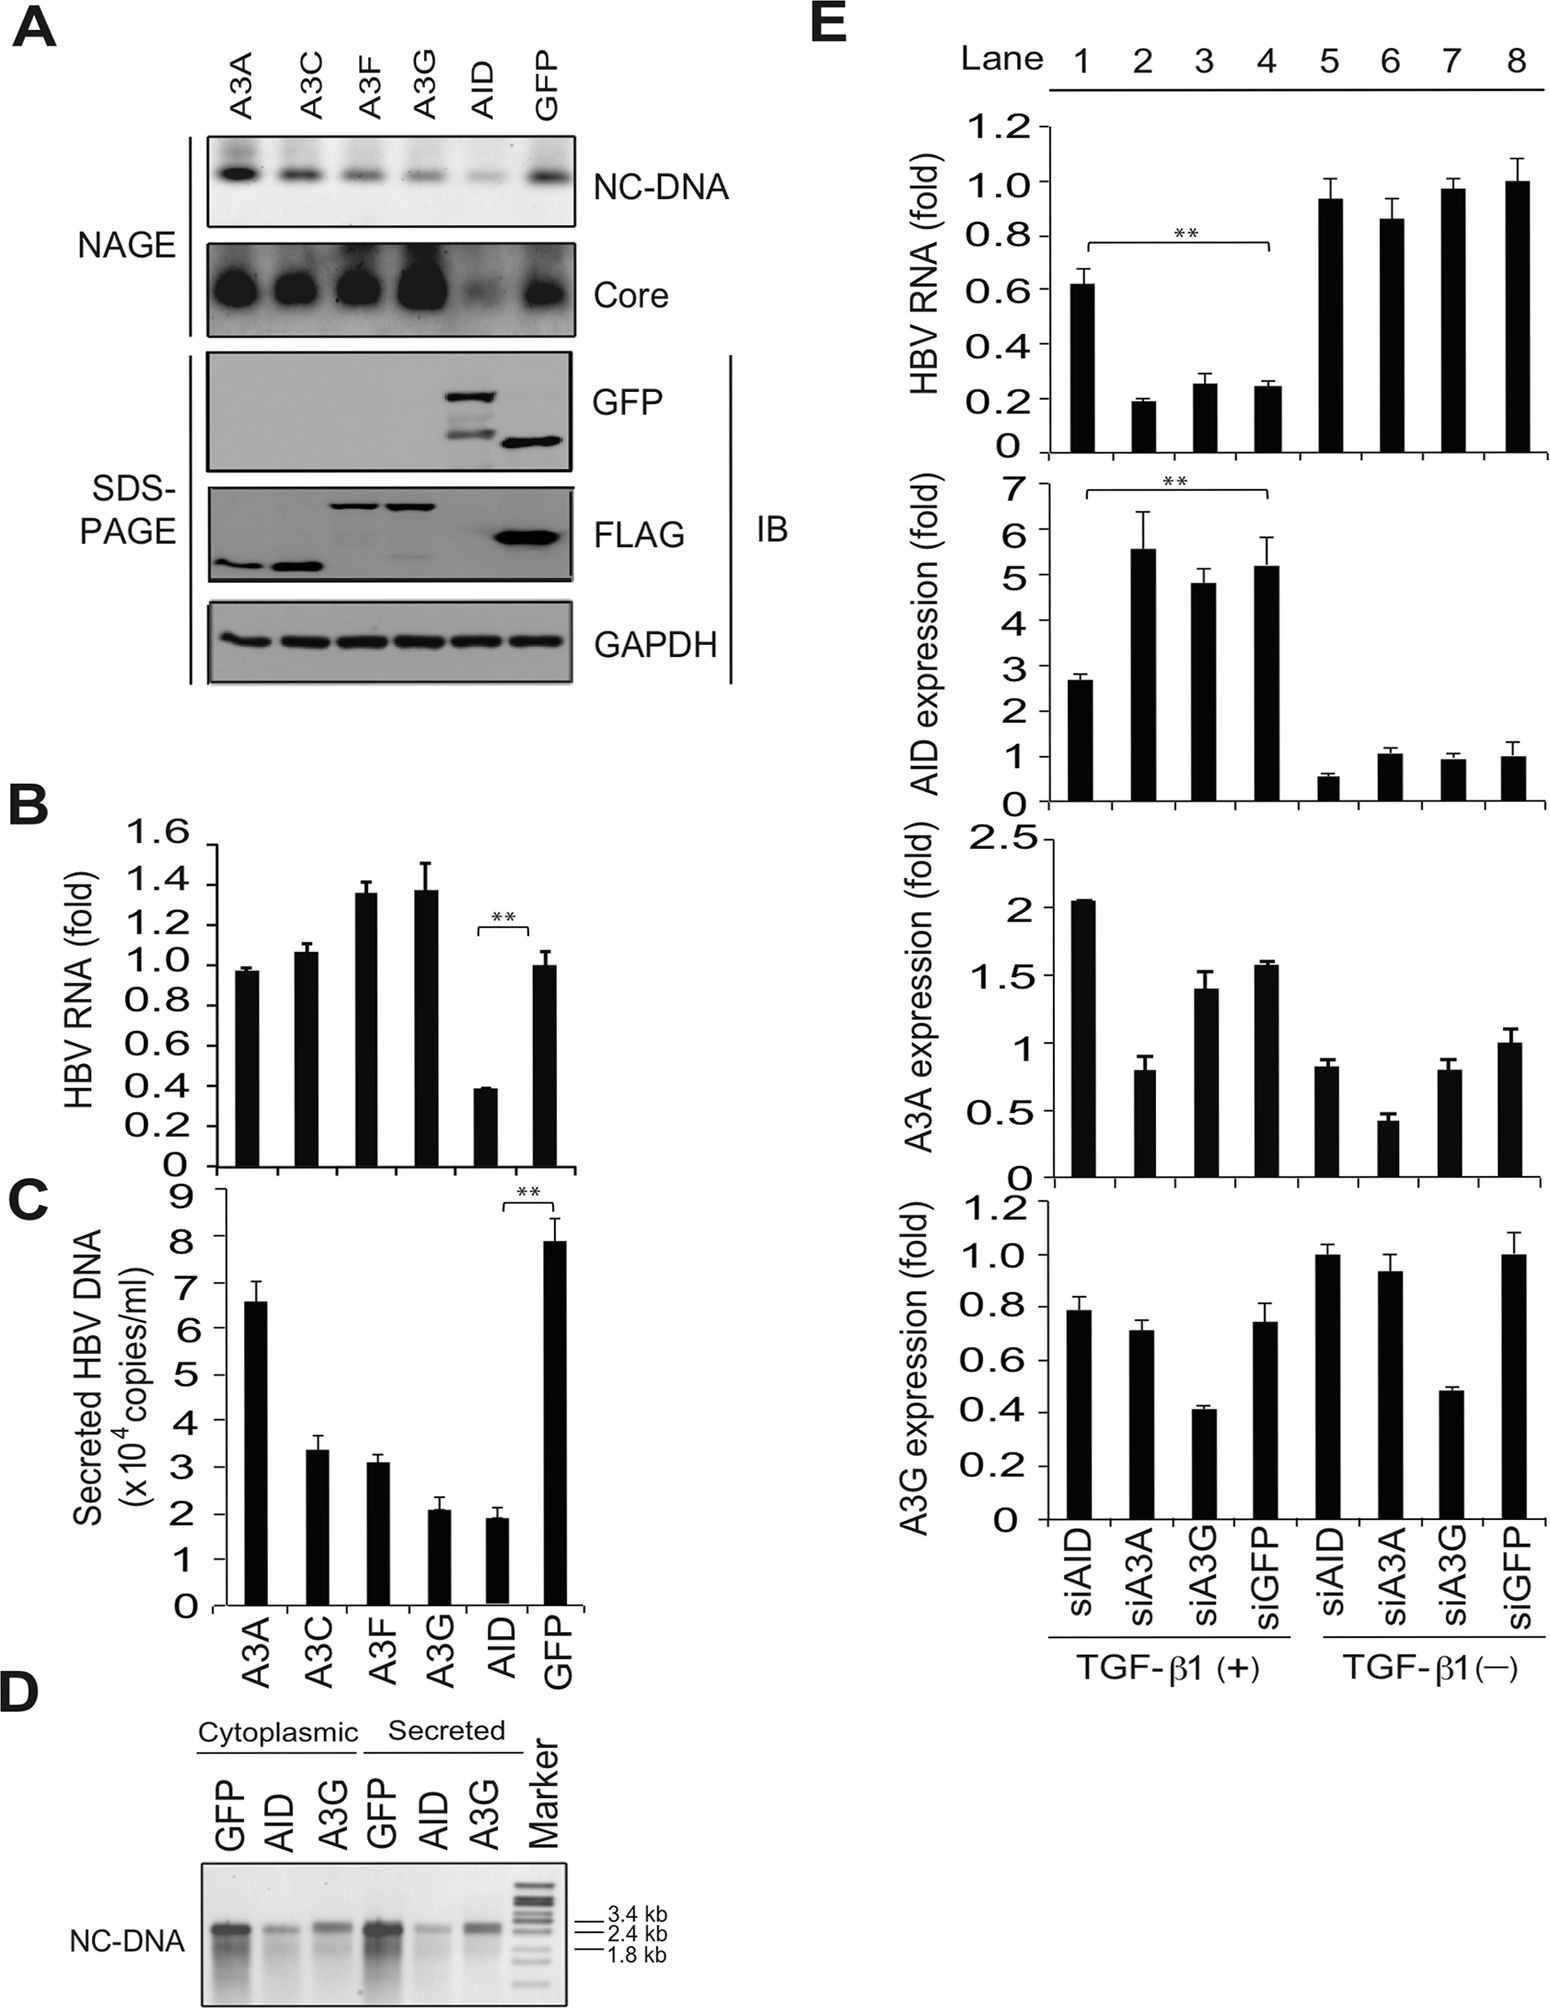 AID is responsible for TGF-β1-mediated reduction of HBV transcripts.